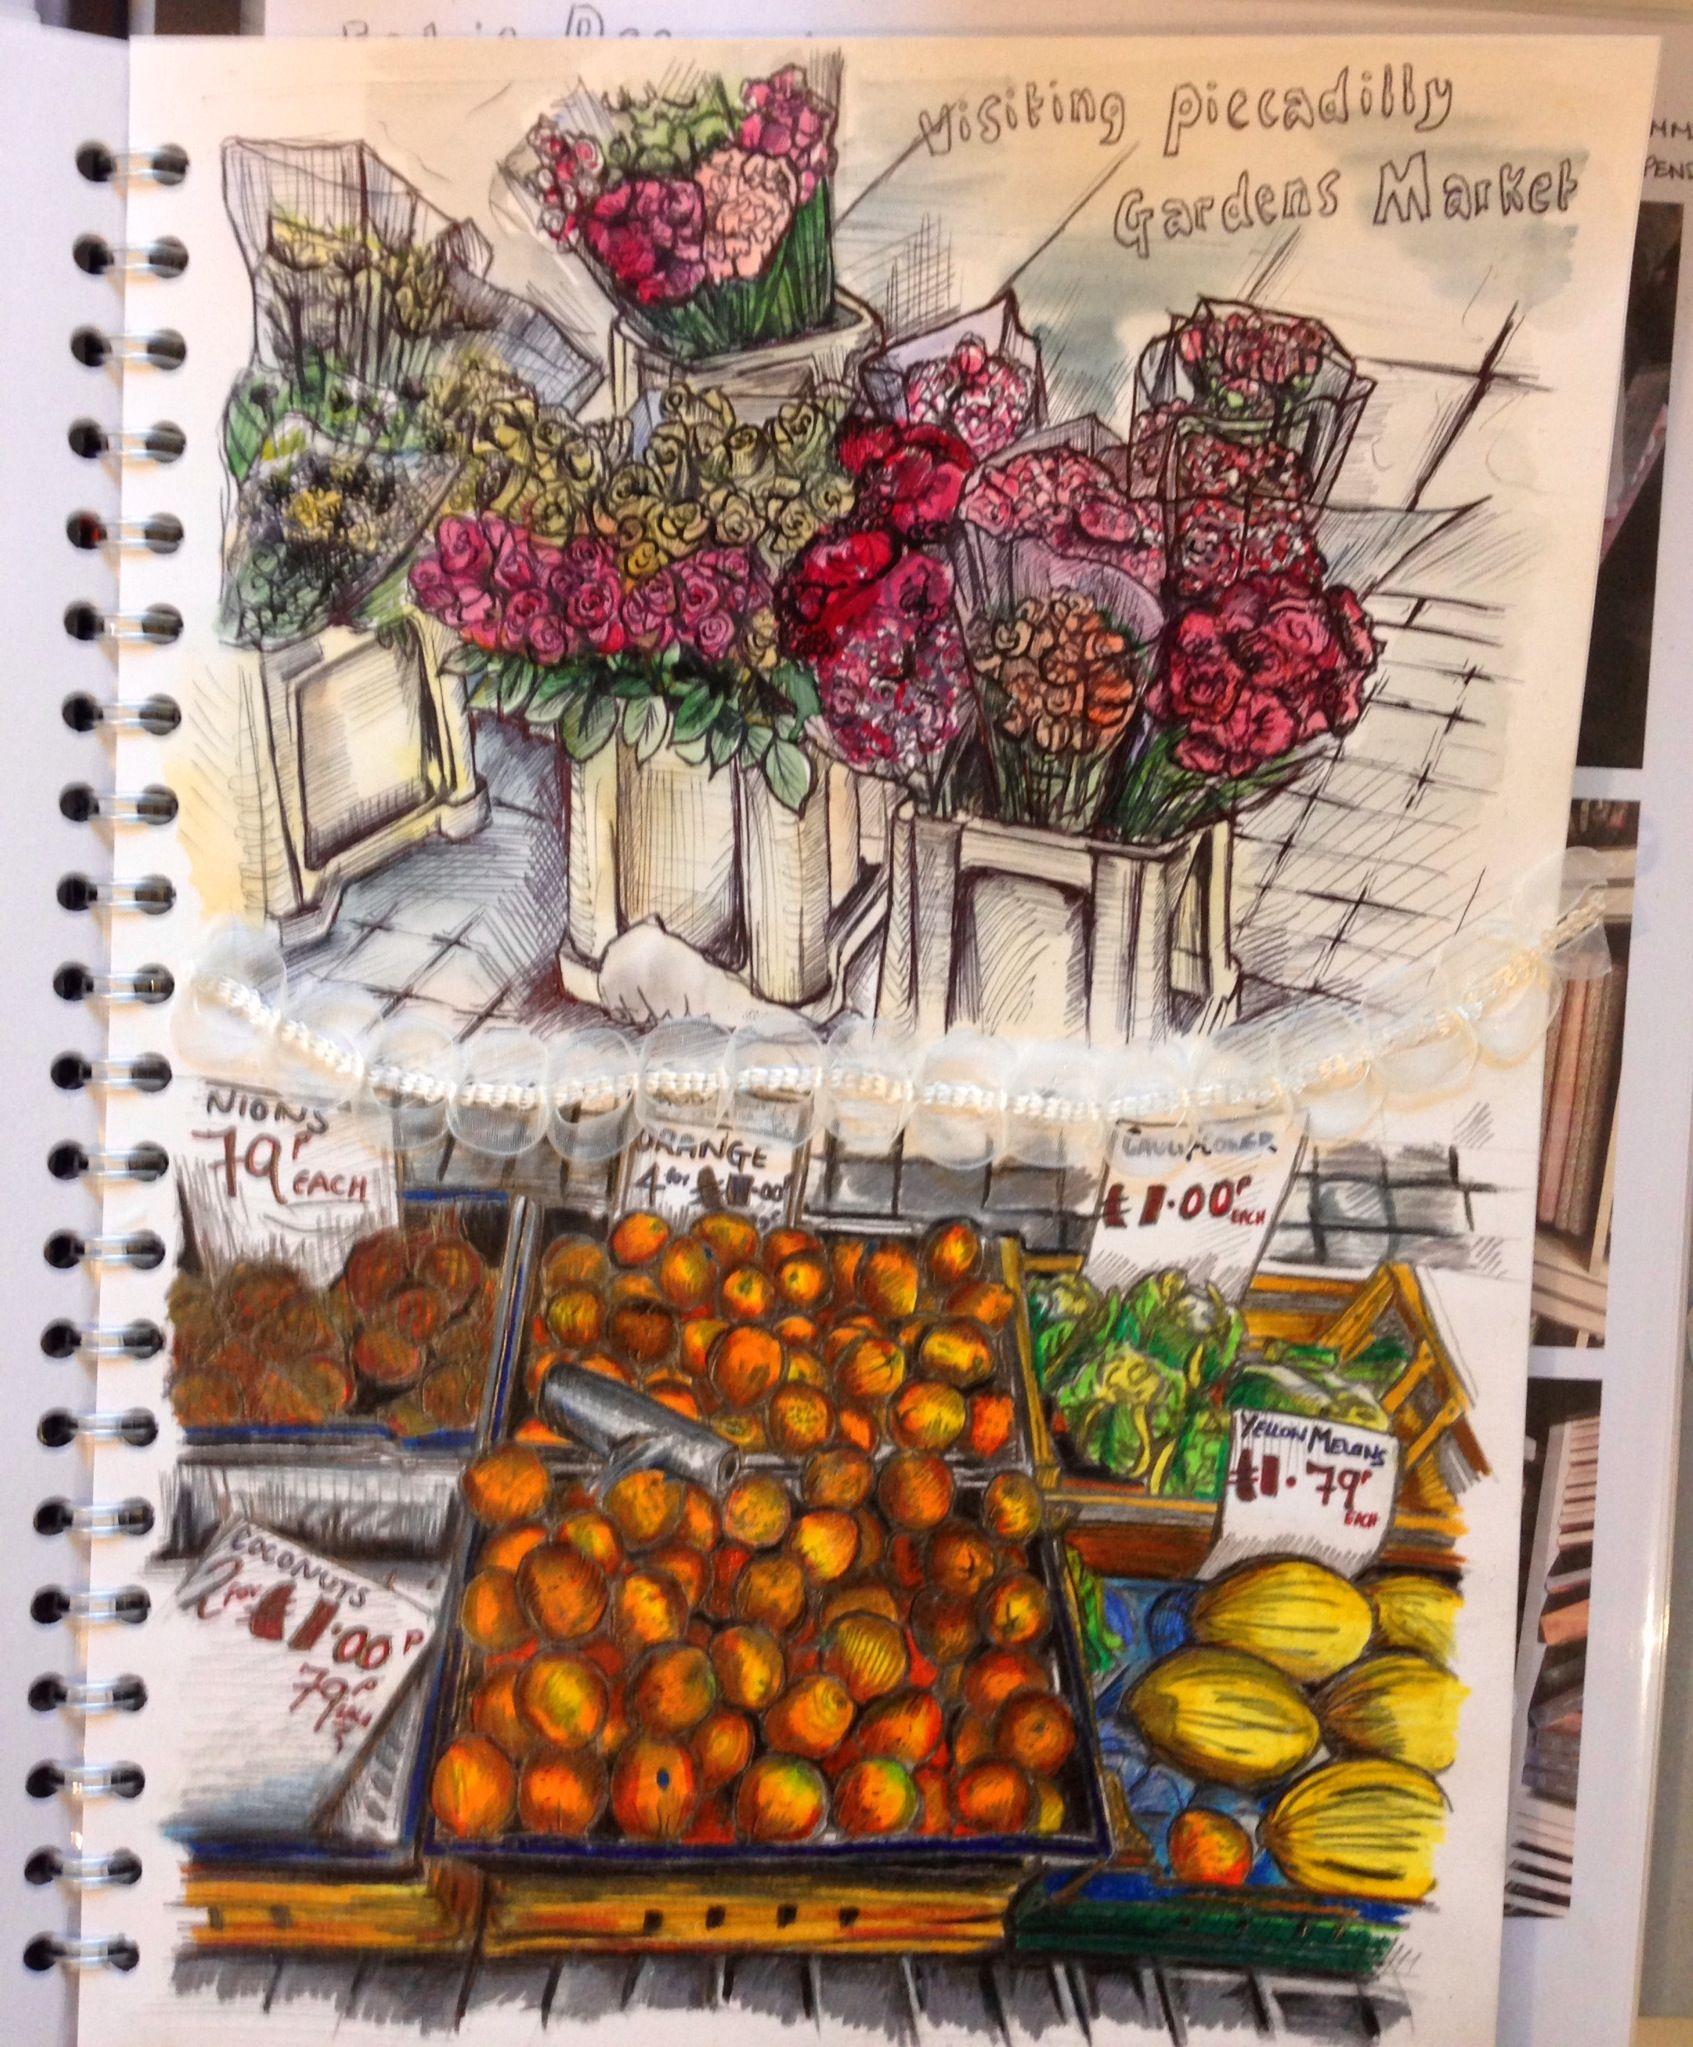 My trip to...Manchester Fruit Markets. By Holly Jenneson